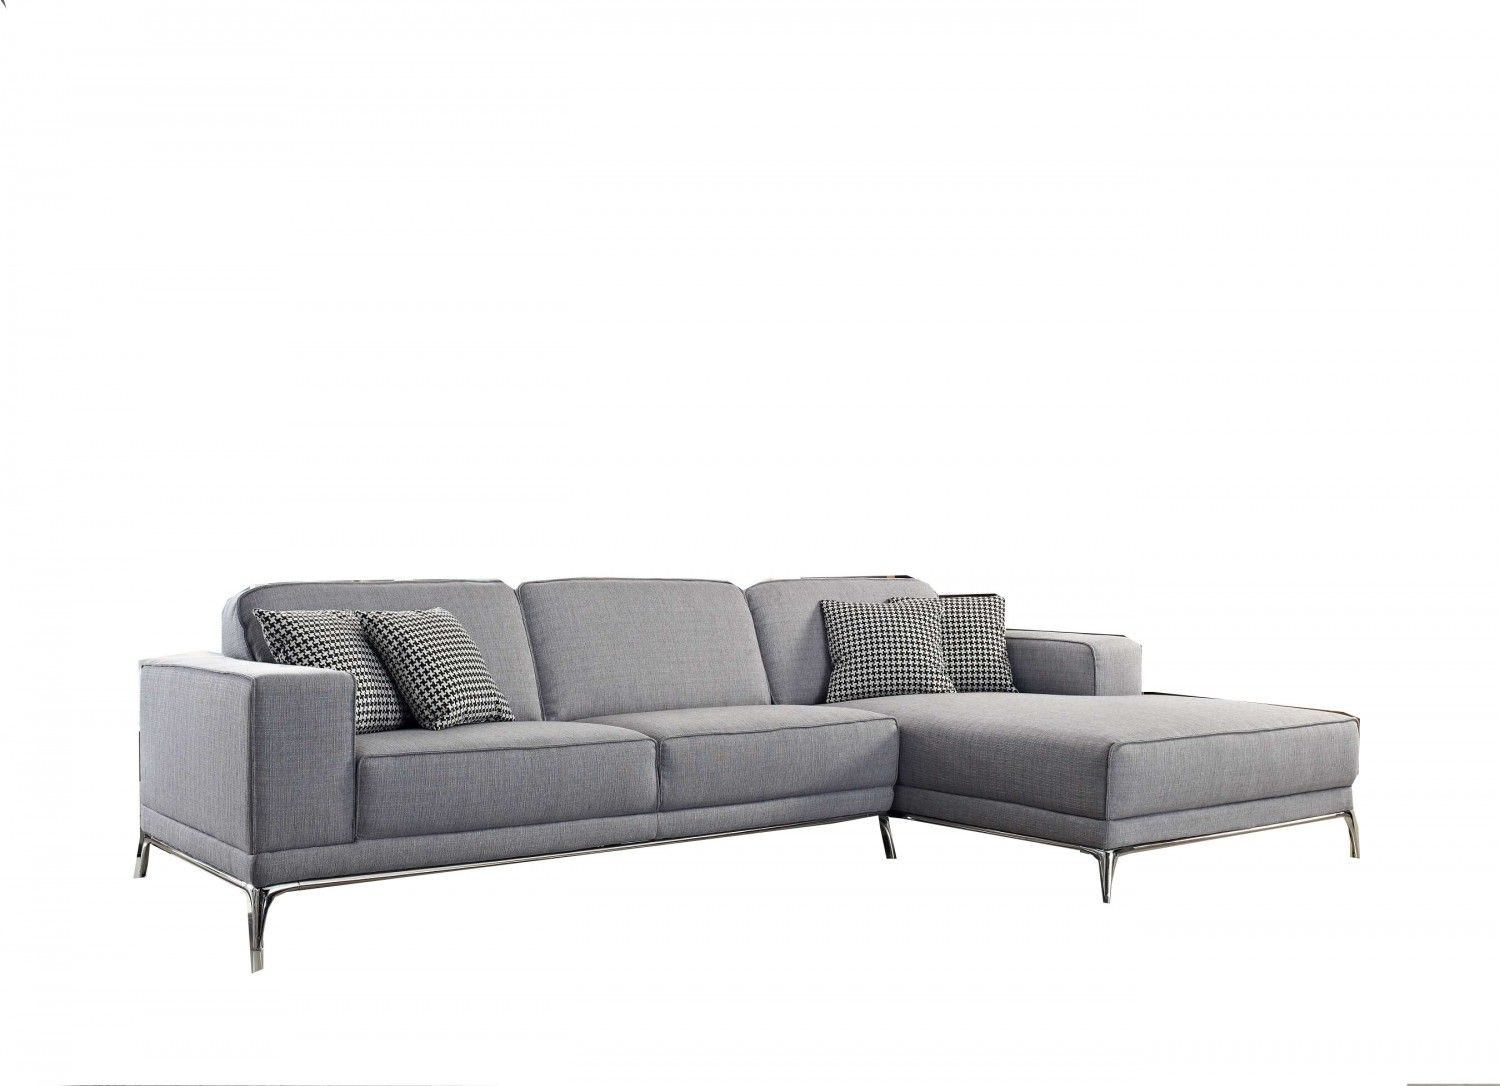 Agata Sectional Fabric Sofa In Light Grey Color By Creative Furniture Sectional Sofa Wood Walls Living Room Creative Furniture